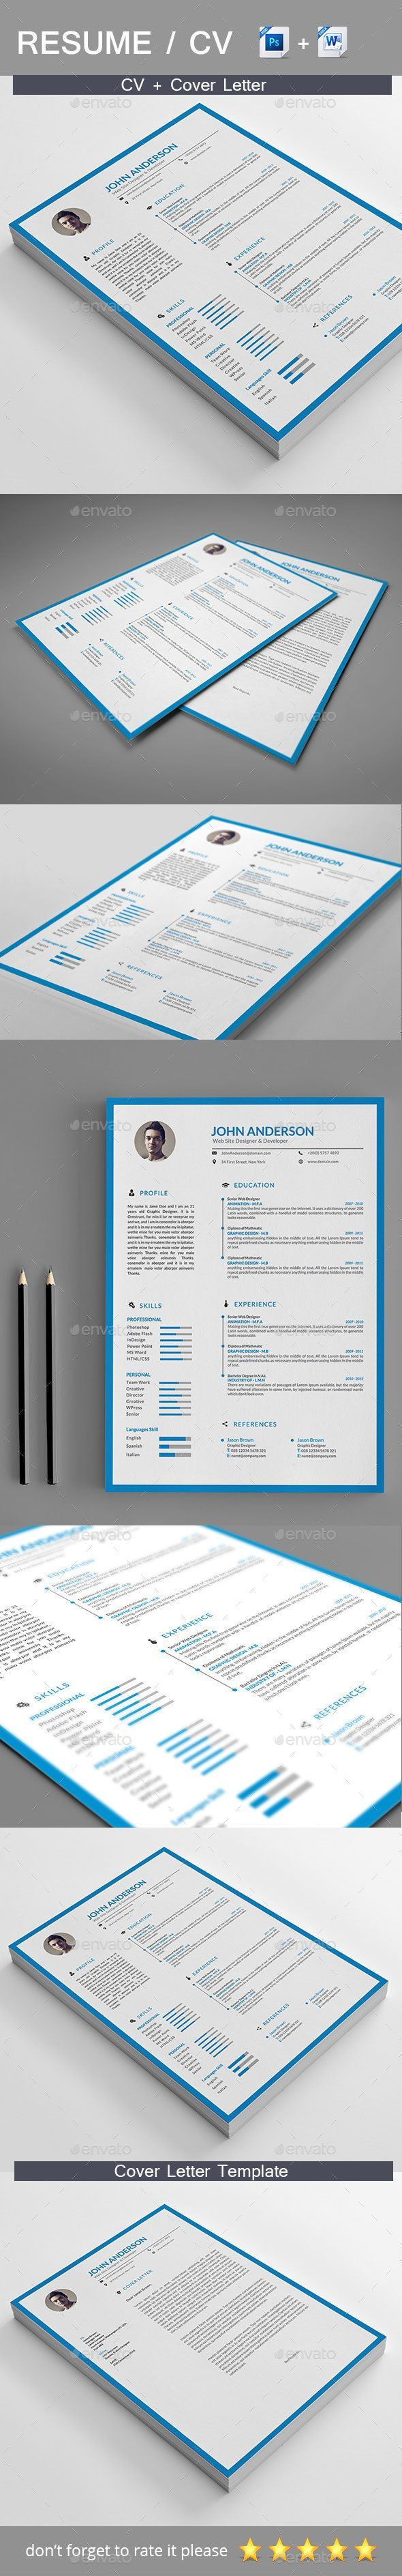 Professional Resume by RealisticArt The perfect way to make the best impression. Strong typographic structure and very easy to use and customise. – The resume have a